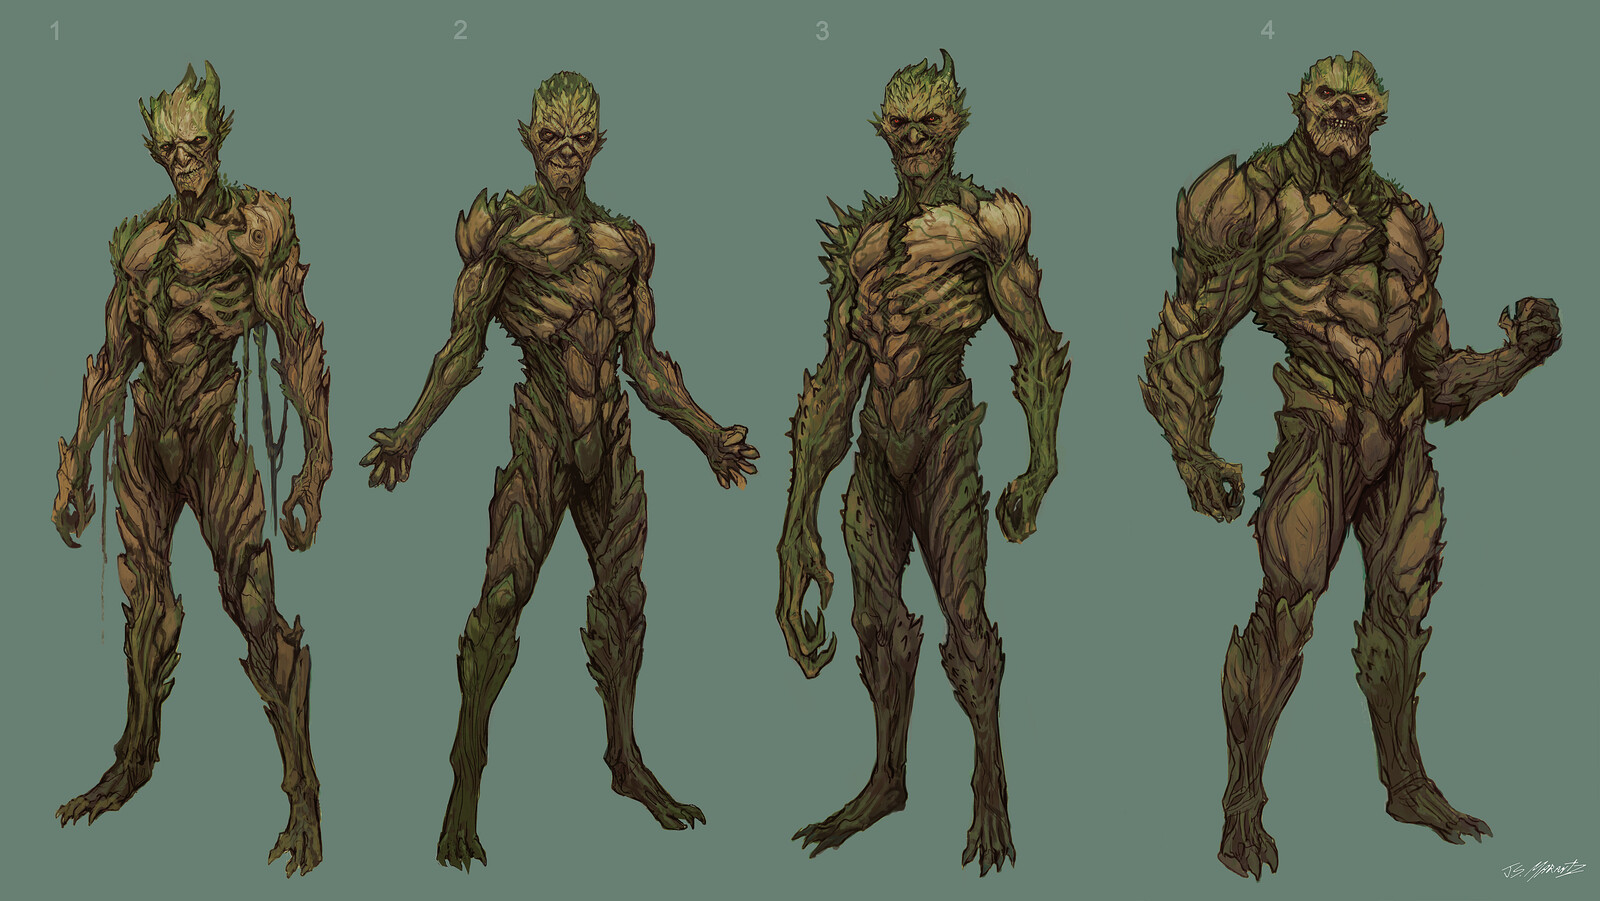 FLORONIC MAN Design Sketchs for Swampthing